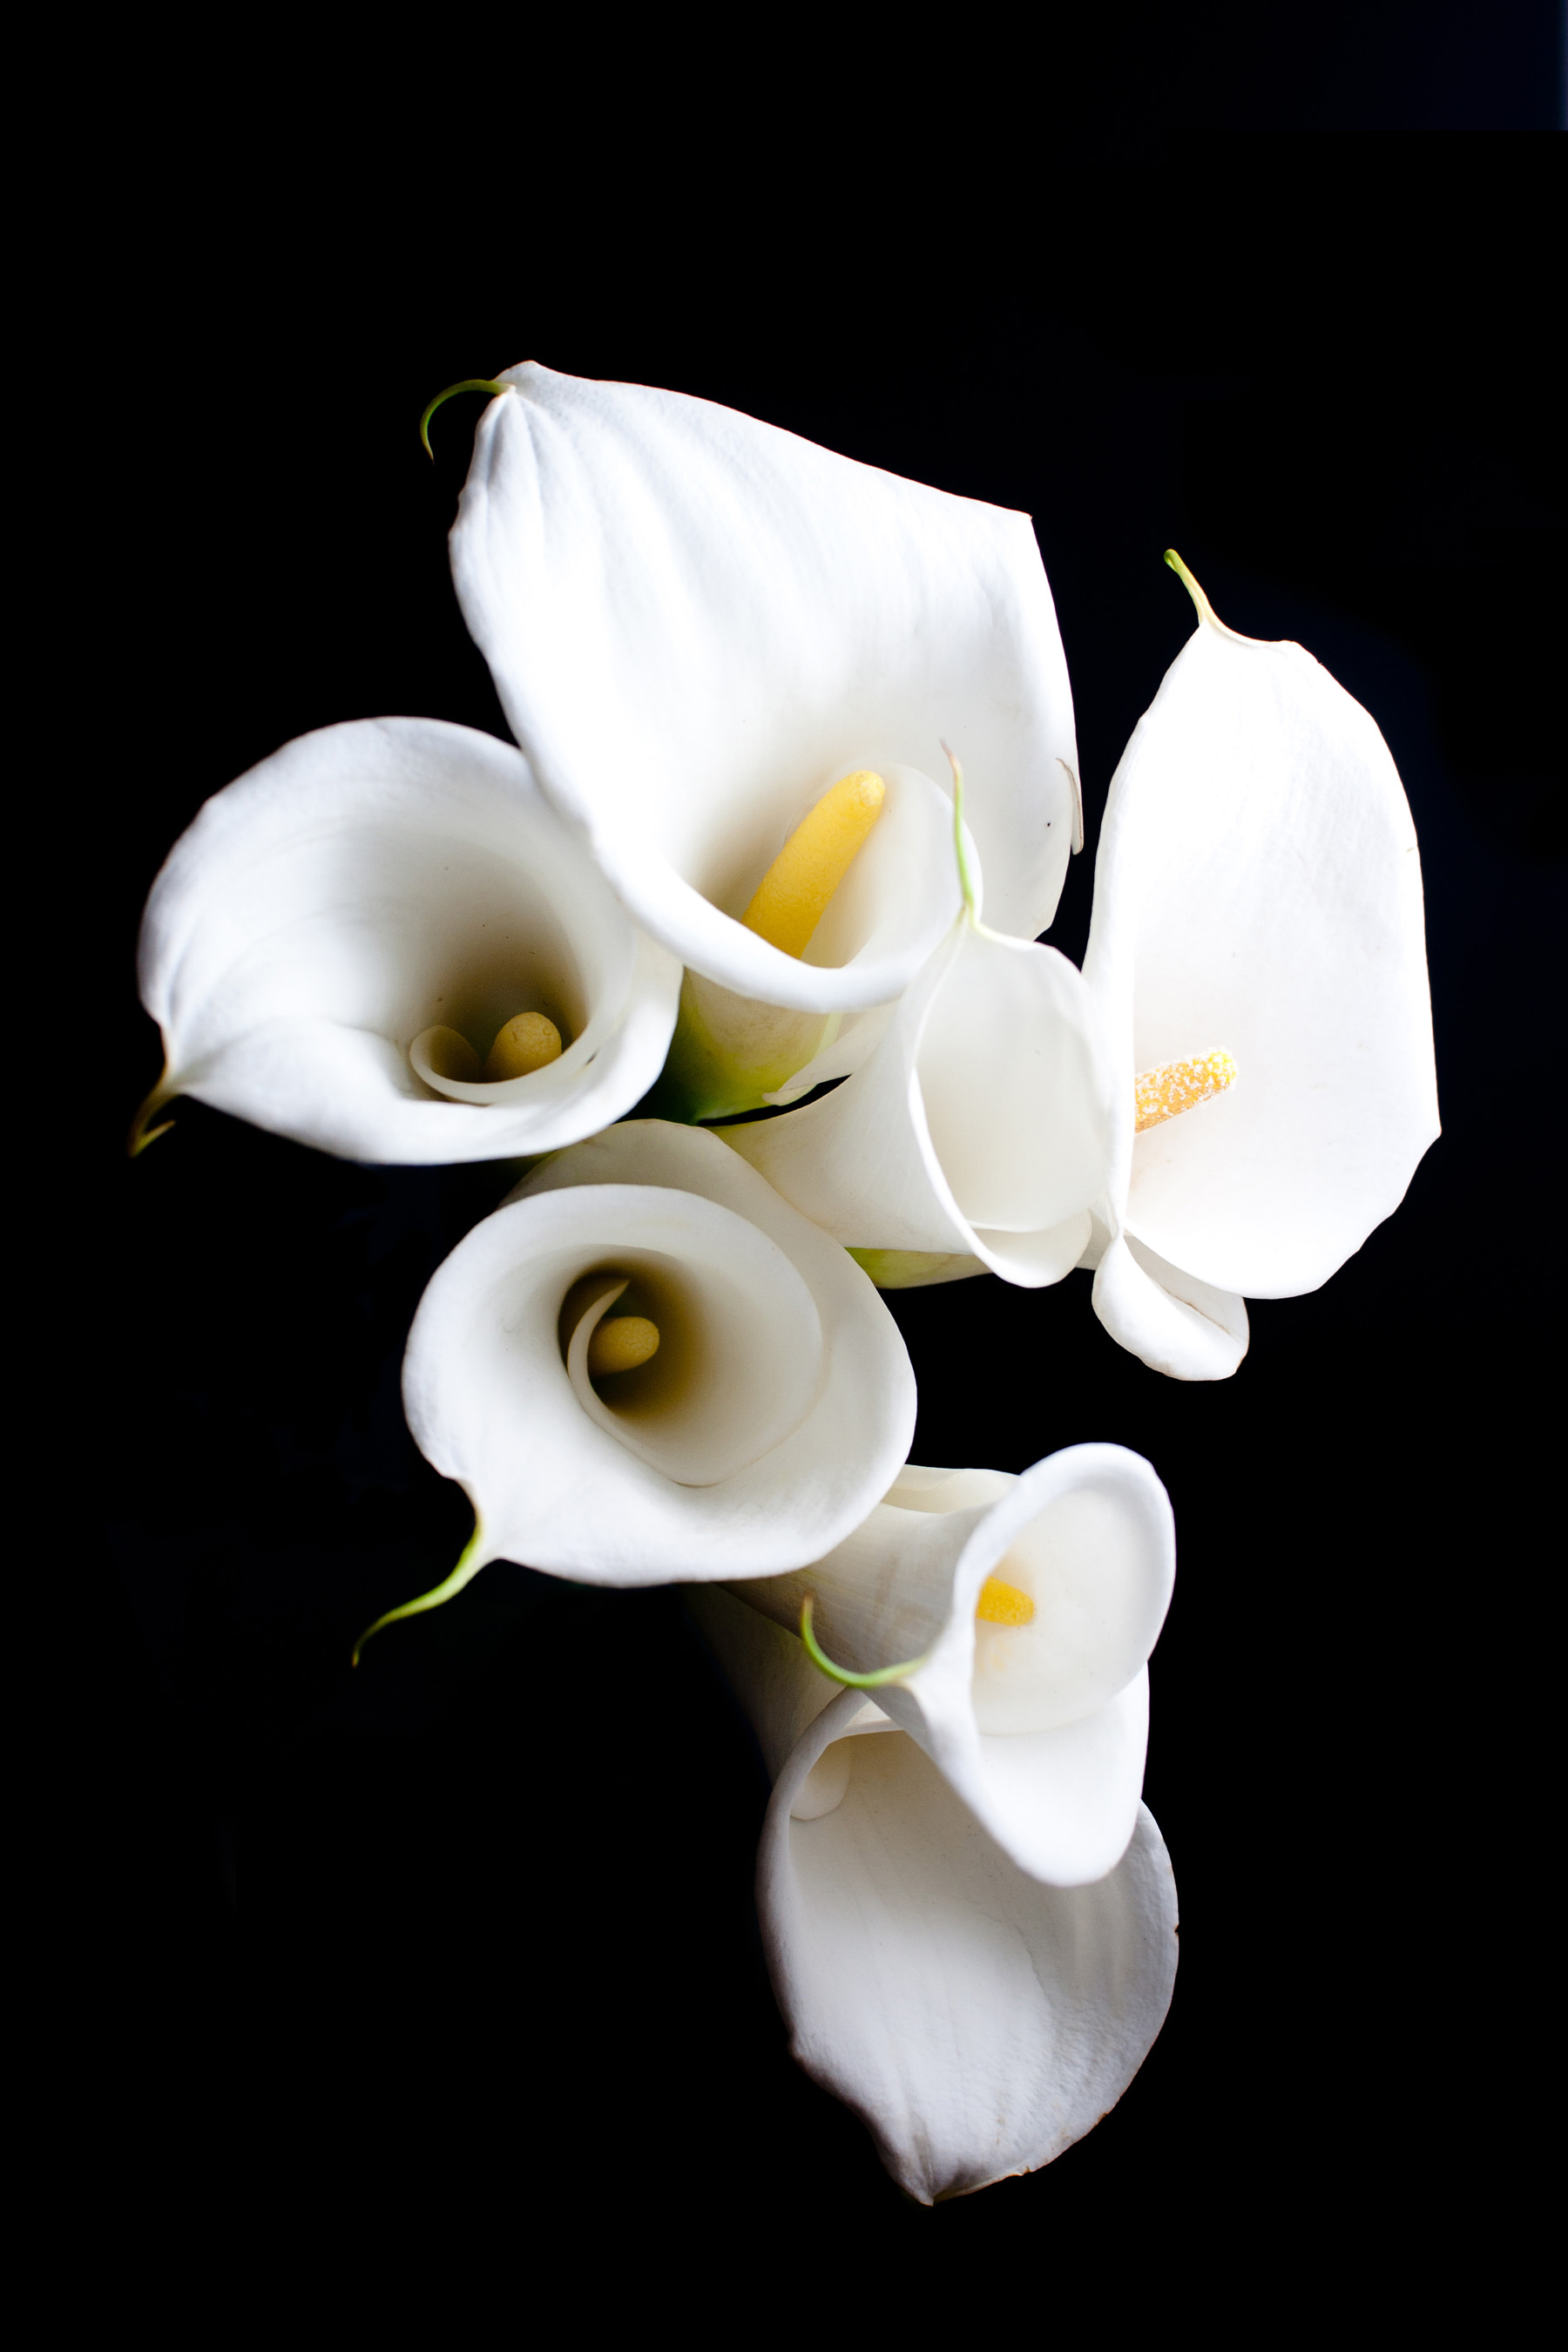 White Calla Lily Flower Close Up 52016 Flowers Photo Flowers